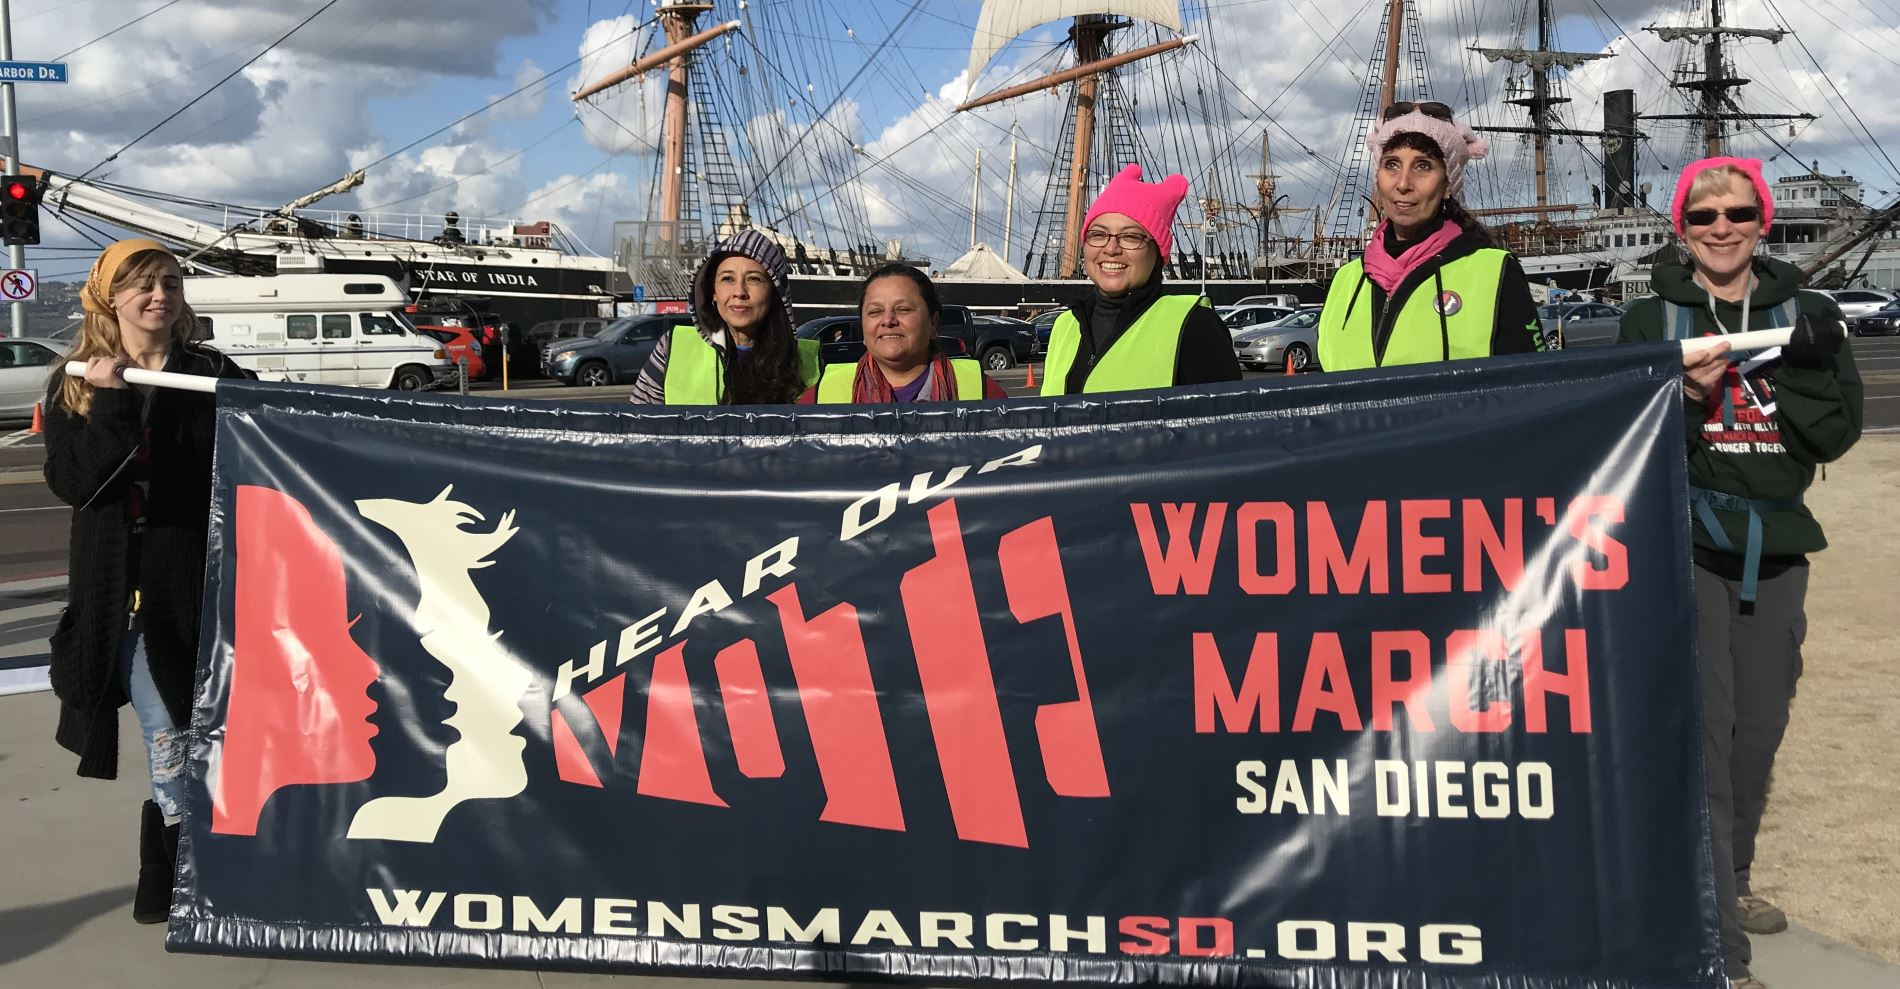 Hear Our Voice! At San Diego's Women's March